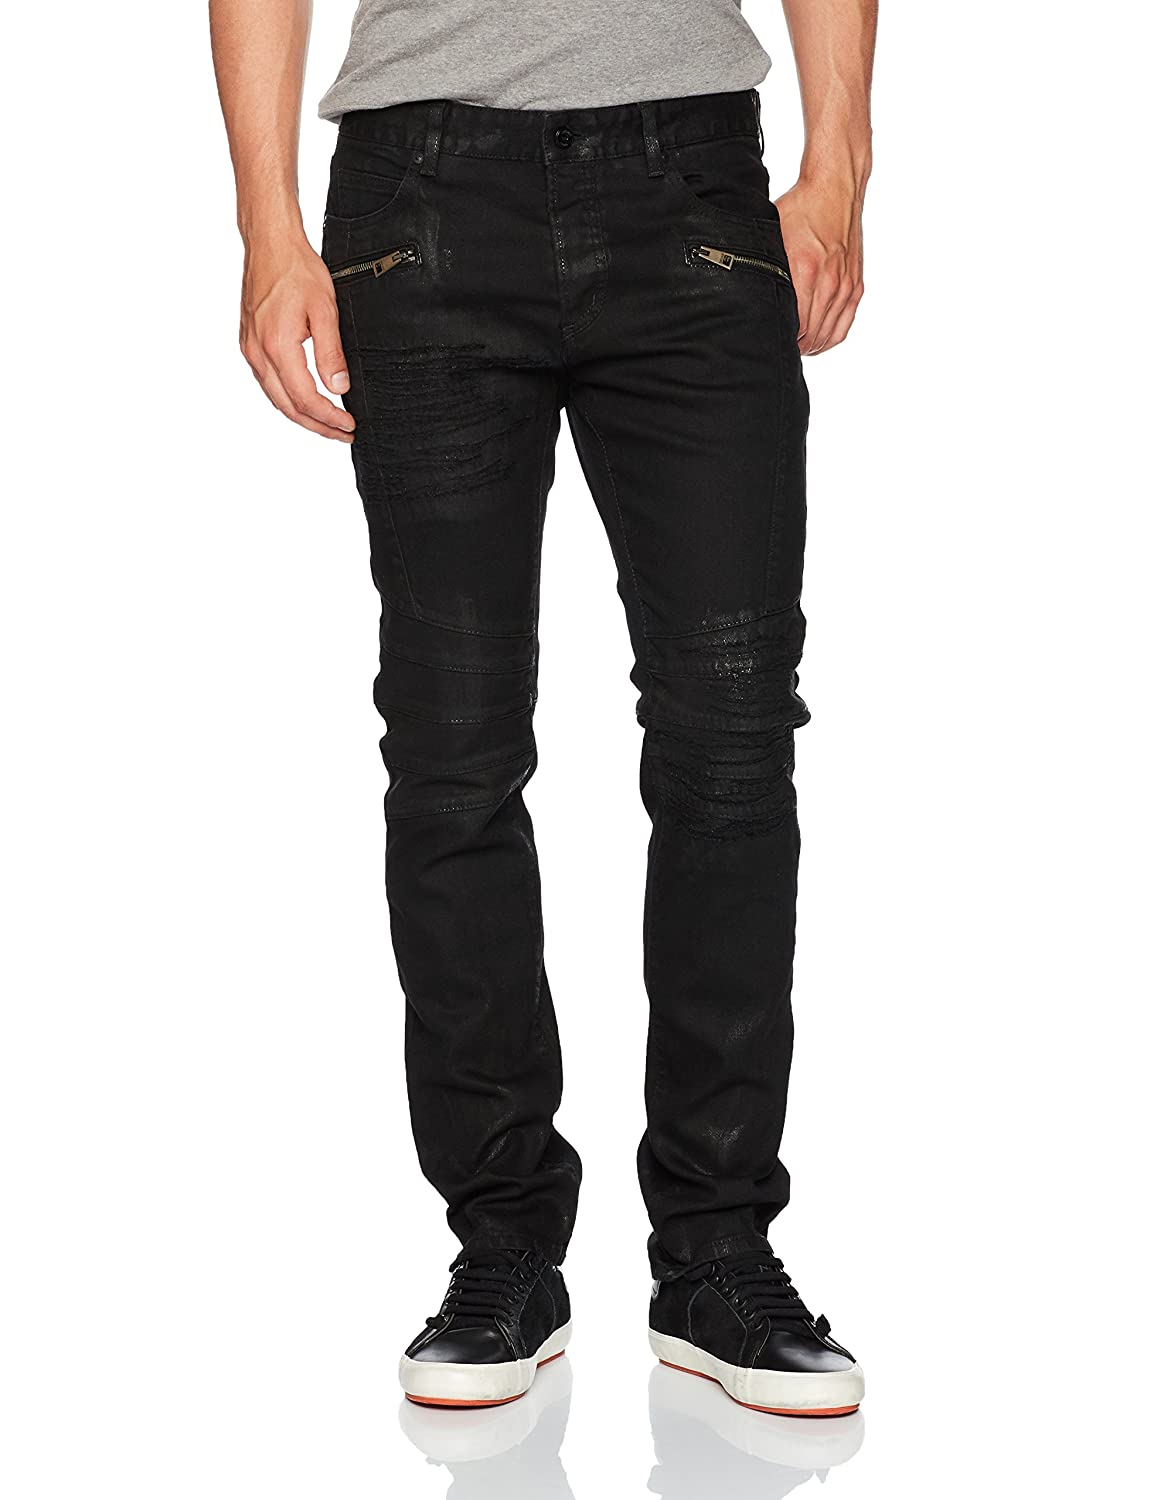 new authentic new arrive quality design Amazon.com: Just Cavalli Men's Coated Black Denim with Zip ...